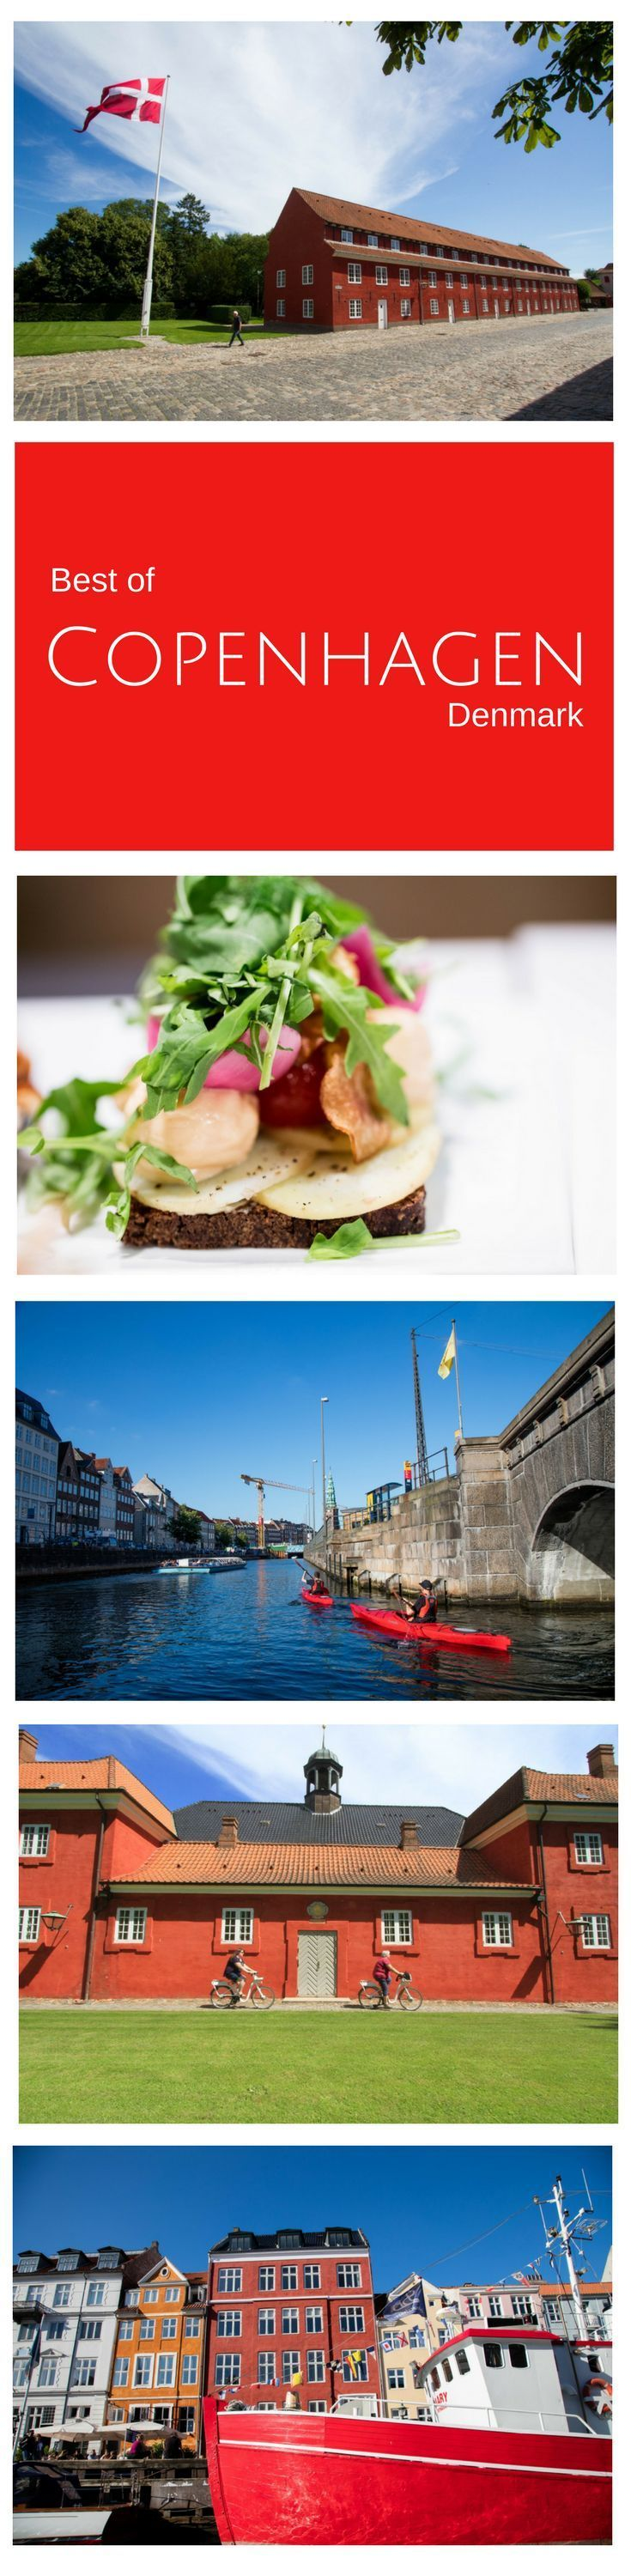 We've written this helpful Copenhagen City Guide to help you plan your visit and make the most of your time in this beautiful Danish city.